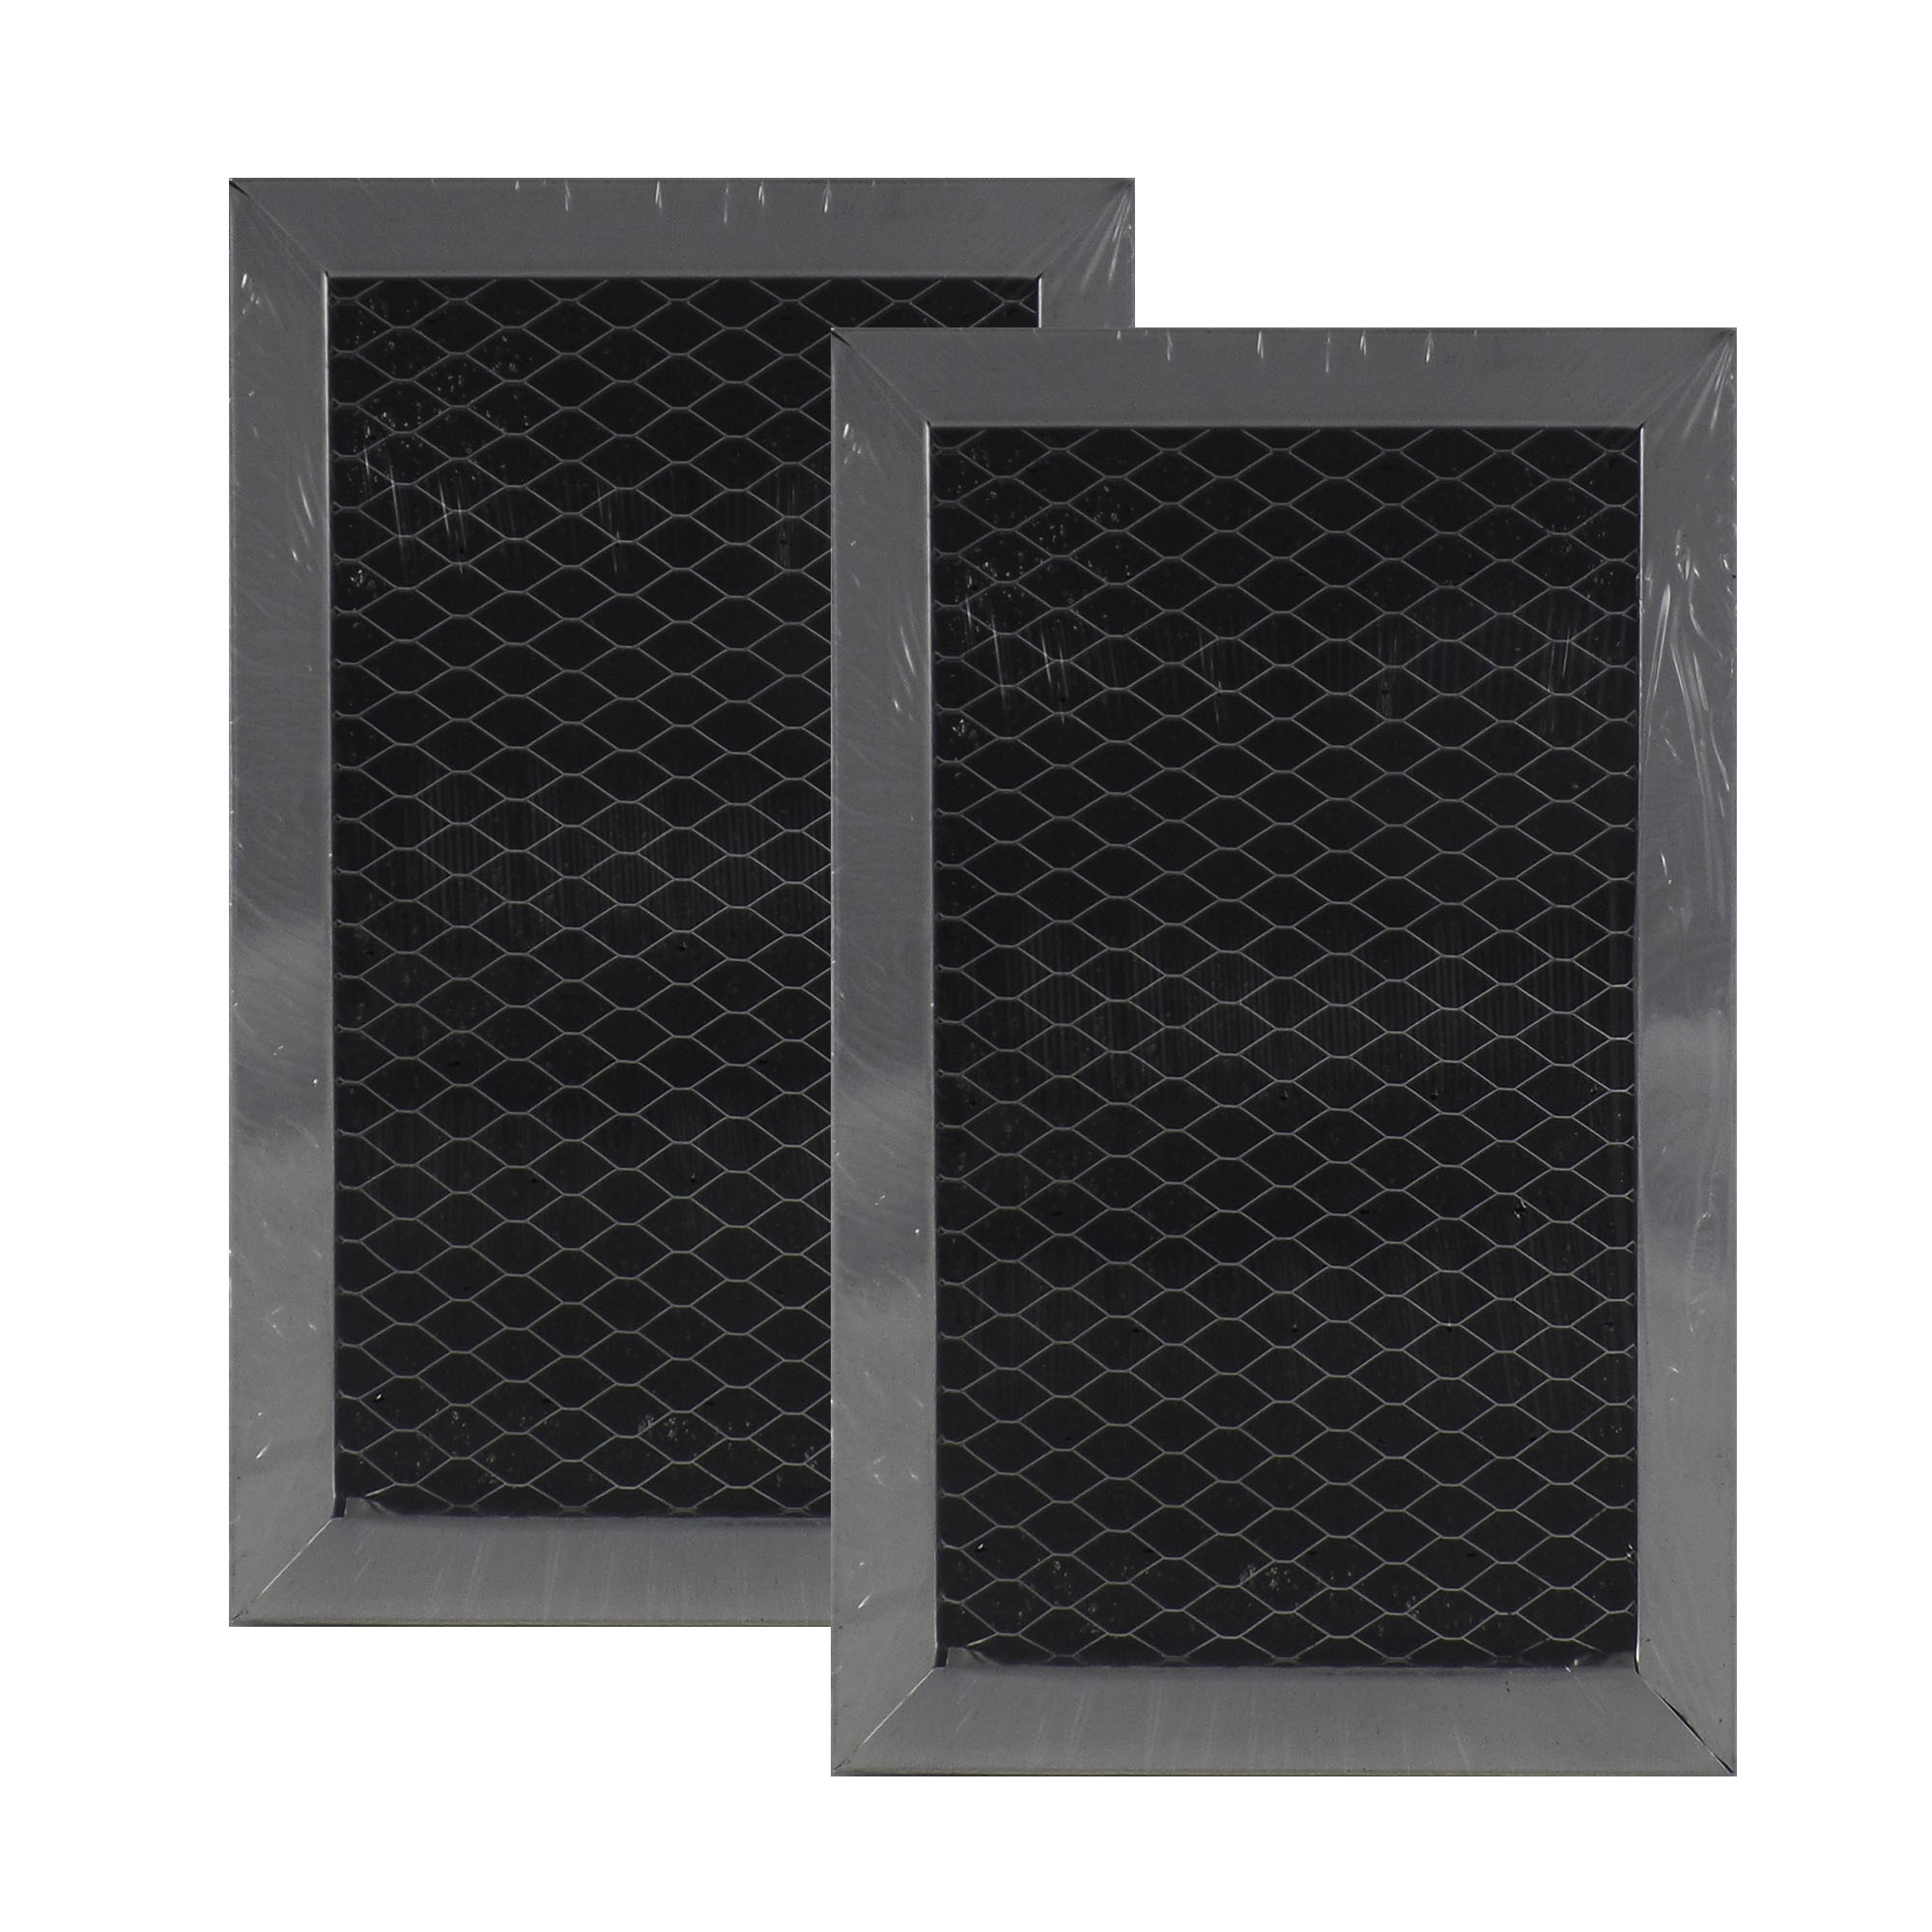 2 PACK 1084770 GE Microwave Charcoal Carbon Filter Replacements by Air Filter...